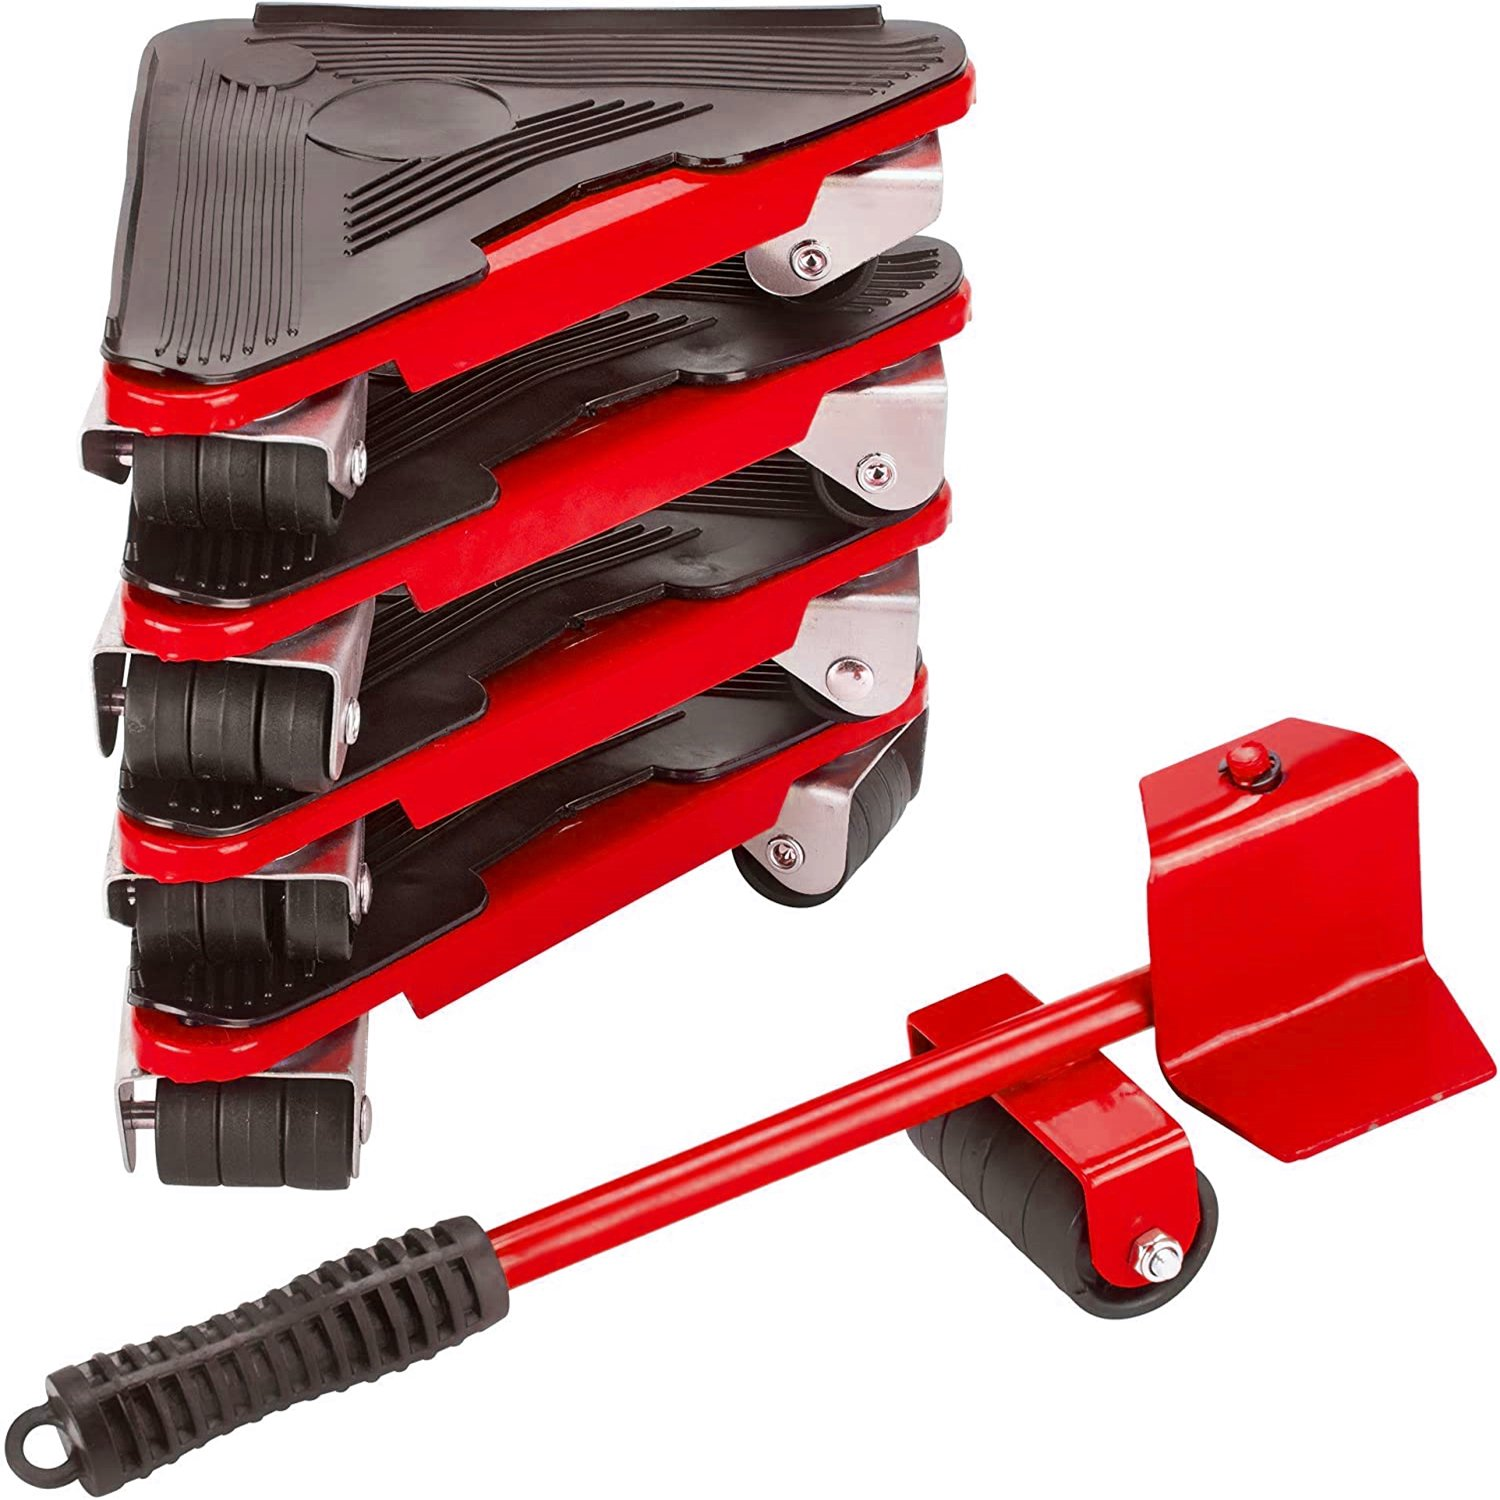 Furniture Lifter Mover Tool Set